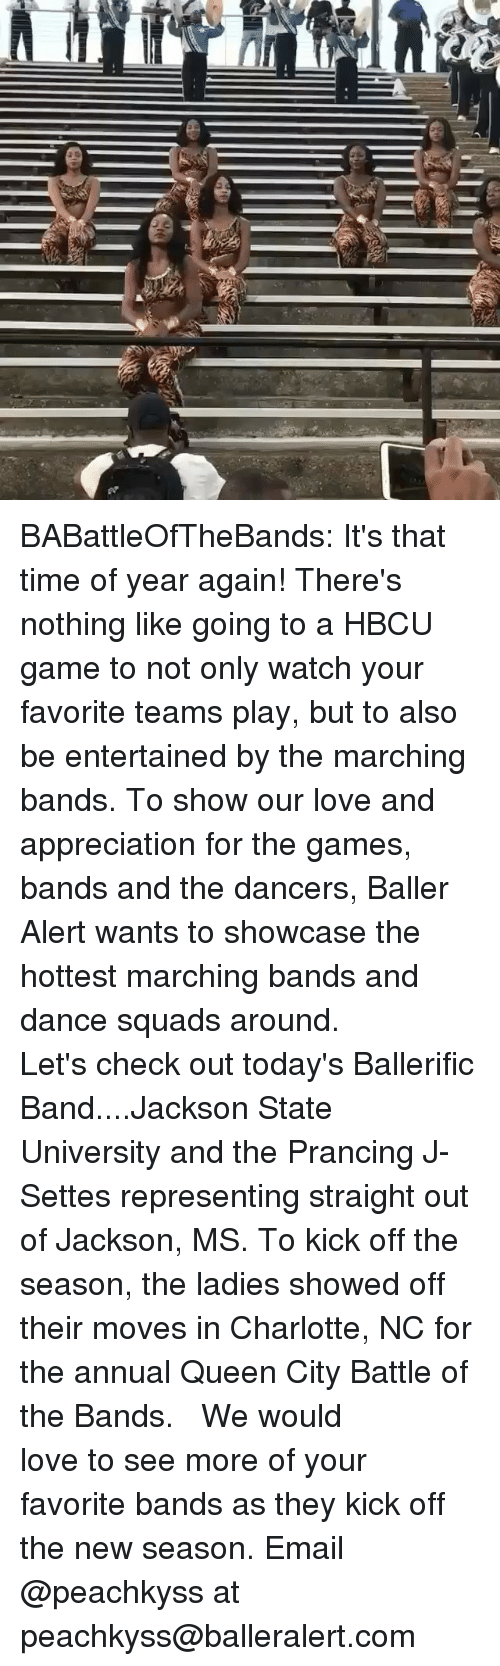 hbcu: BABattleOfTheBands: It's that time of year again! There's nothing like going to a HBCU game to not only watch your favorite teams play, but to also be entertained by the marching bands. To show our love and appreciation for the games, bands and the dancers, Baller Alert wants to showcase the hottest marching bands and dance squads around. ⠀⠀⠀ ⠀⠀⠀⠀⠀⠀⠀ Let's check out today's Ballerific Band....Jackson State University and the Prancing J-Settes representing straight out of Jackson, MS. To kick off the season, the ladies showed off their moves in Charlotte, NC for the annual Queen City Battle of the Bands. ⠀⠀⠀⠀⠀⠀⠀ ⠀⠀⠀⠀⠀⠀⠀ We would love to see more of your favorite bands as they kick off the new season. Email @peachkyss at peachkyss@balleralert.com